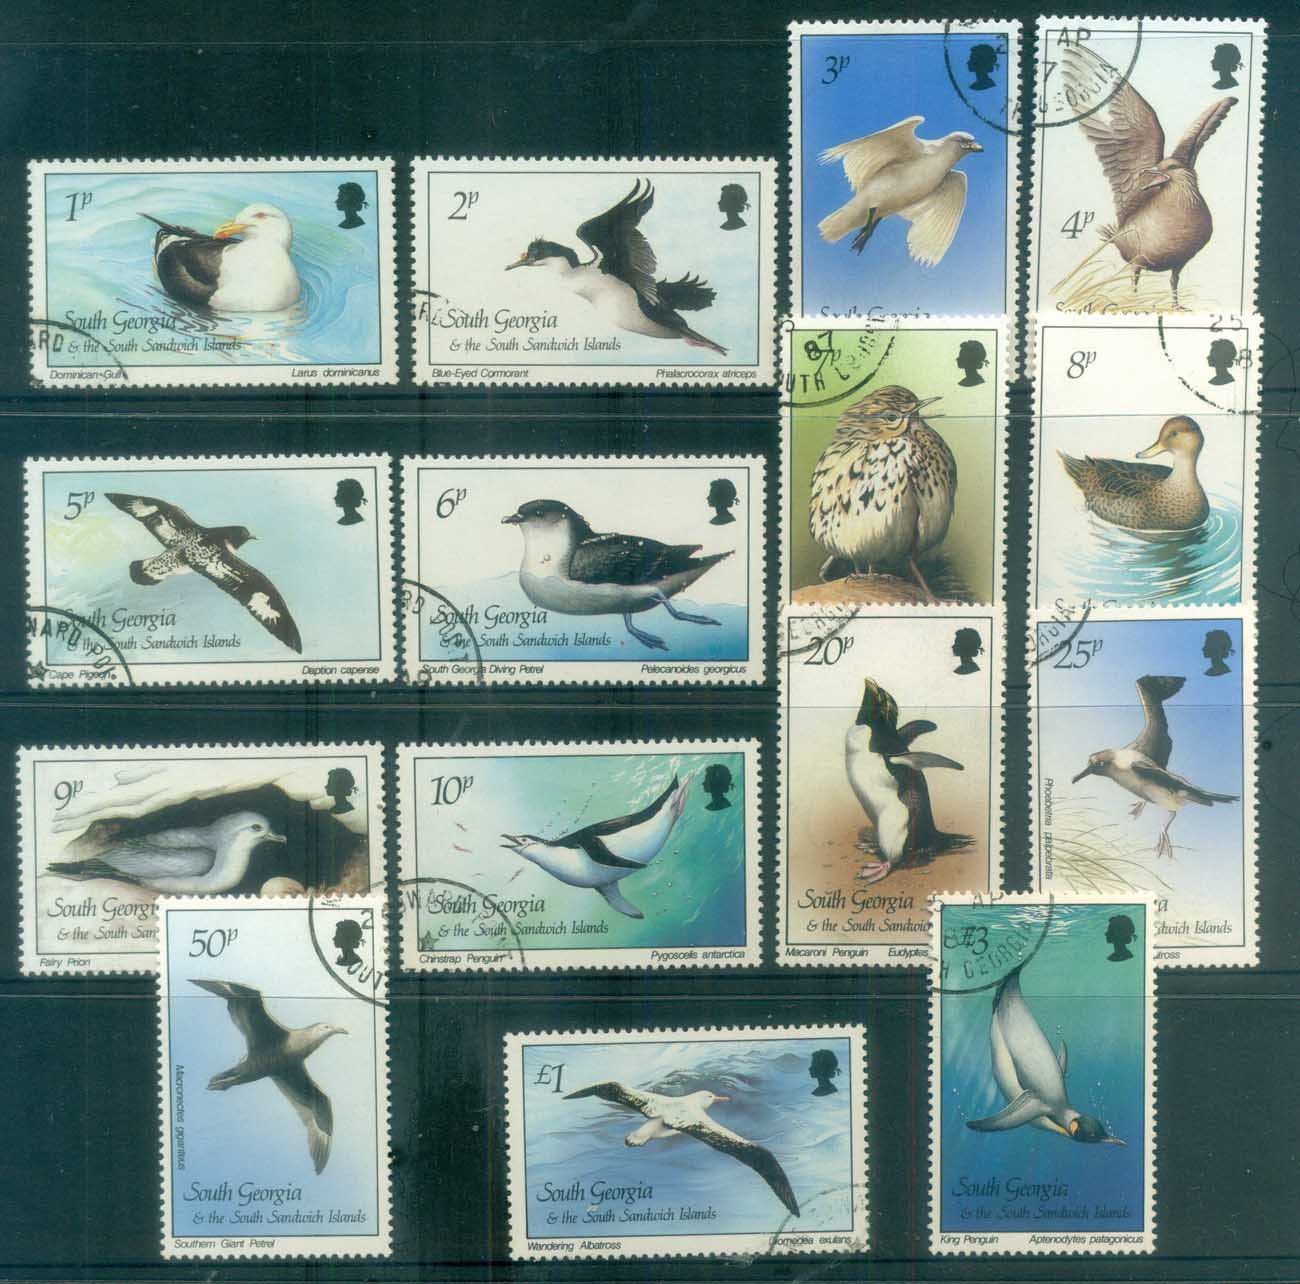 South Georgia 1987 Birds FU lot78001